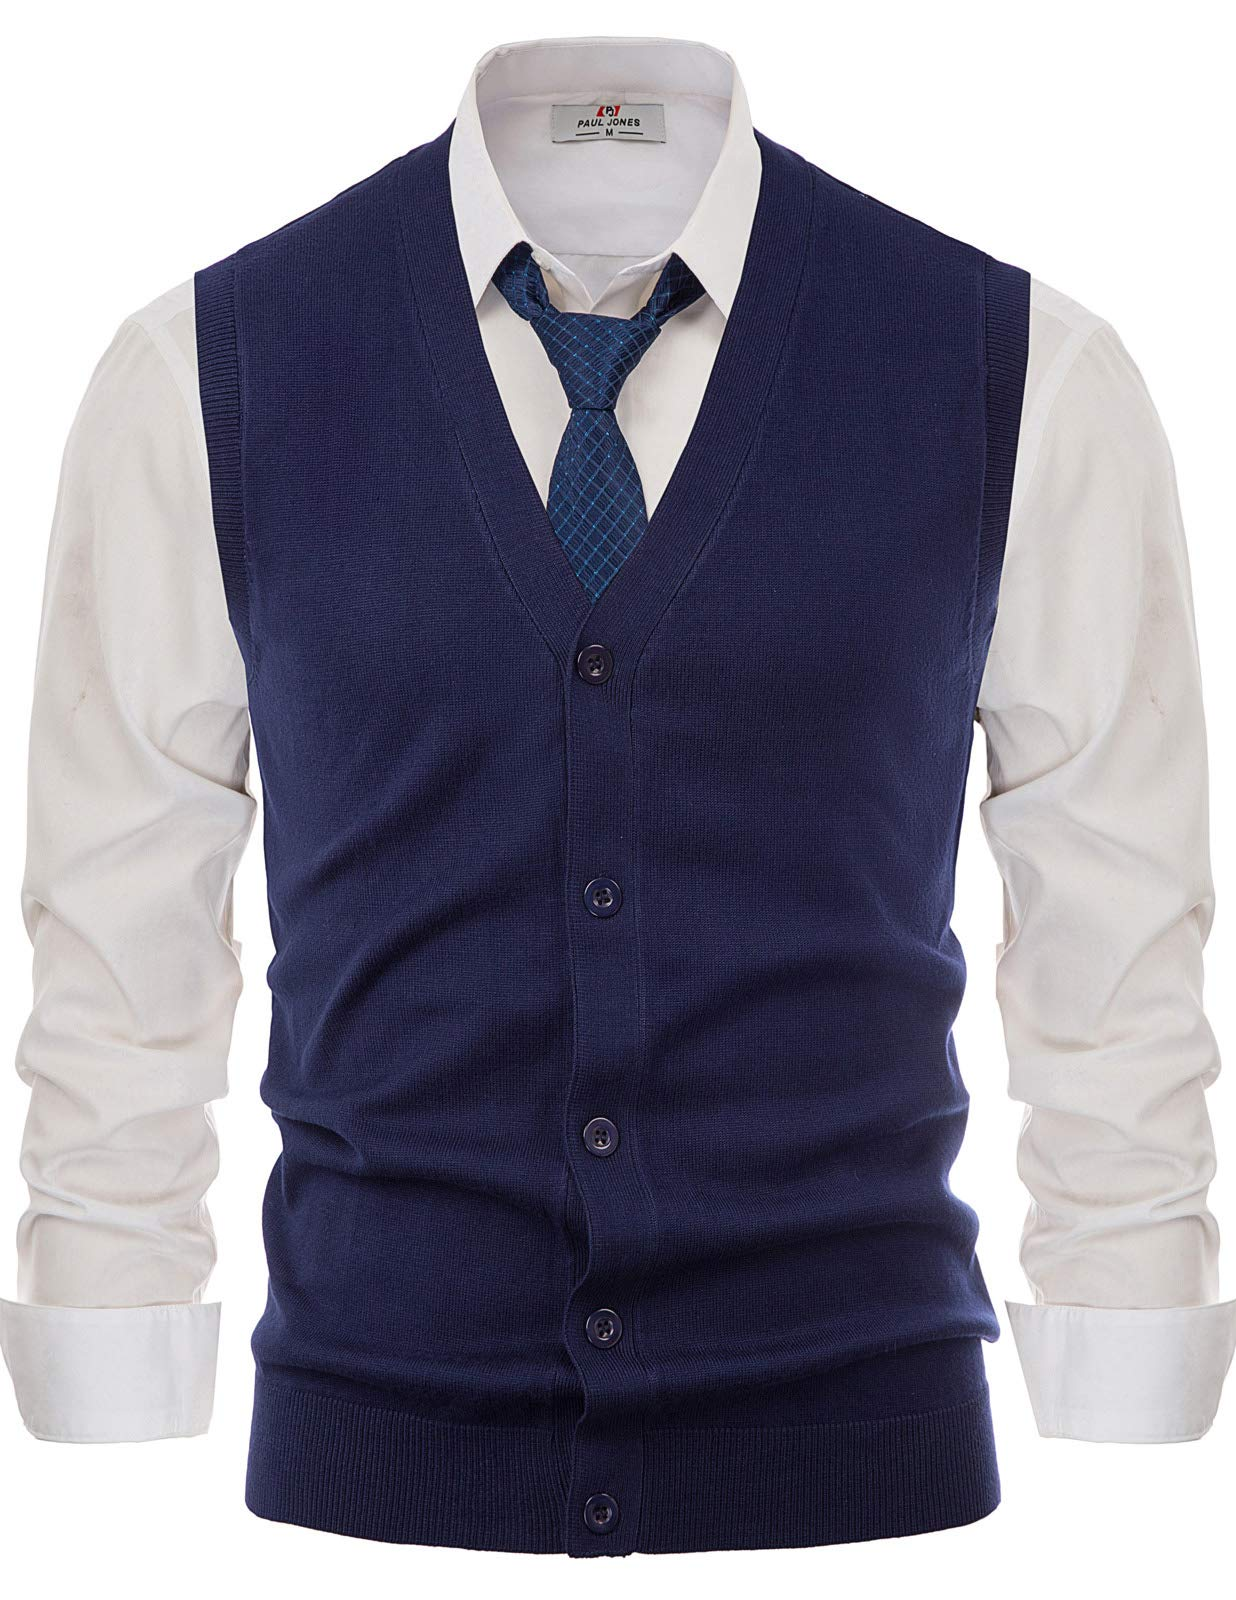 Stylish V-Neck Button Down Cardigan Sweater Vest for Men(Navy Blue,M) by PAUL JONES